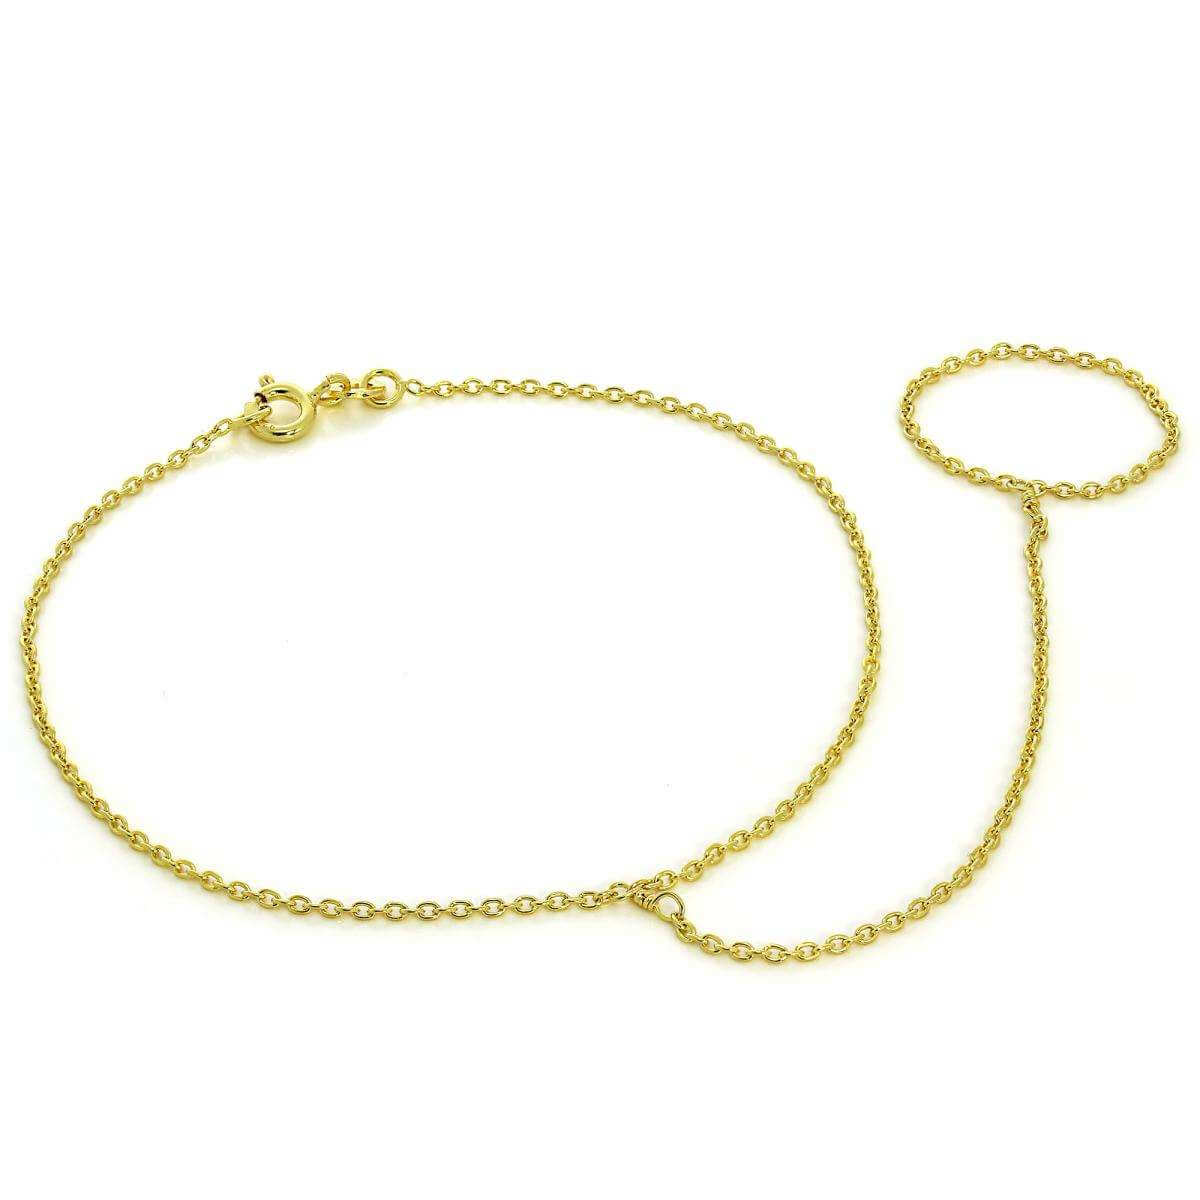 Gold Plated Sterling Silver Belcher Chain Bracelet